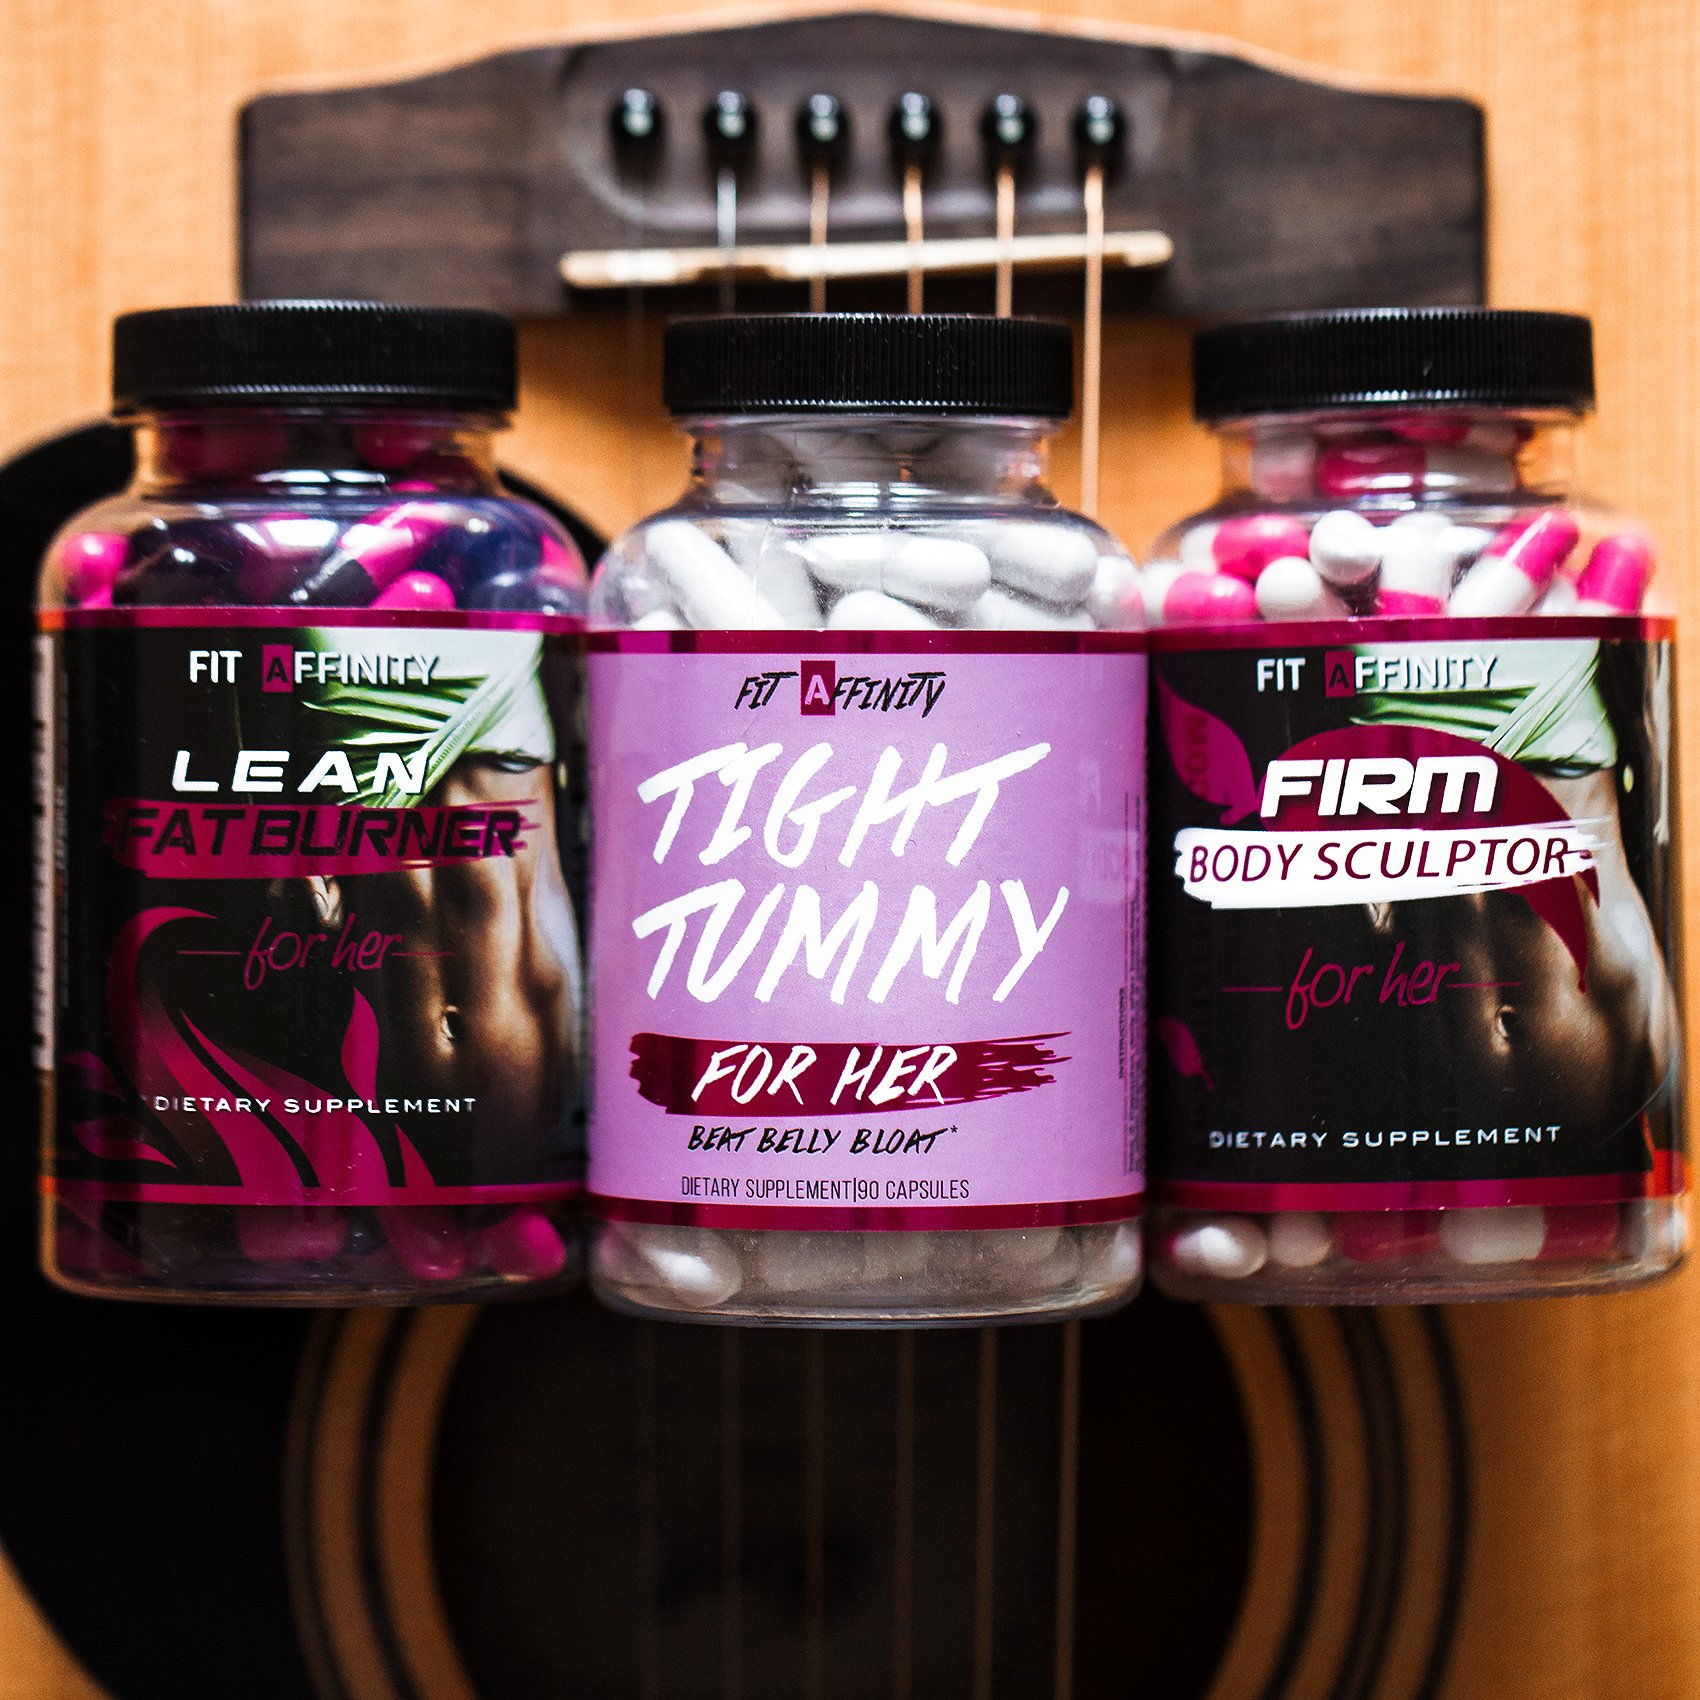 Fit Affinity - Weight Loss Bundle - Lean Fat Burner, Tight Tummy, Firm Body Sculptor by Fit Affinity (Image #9)